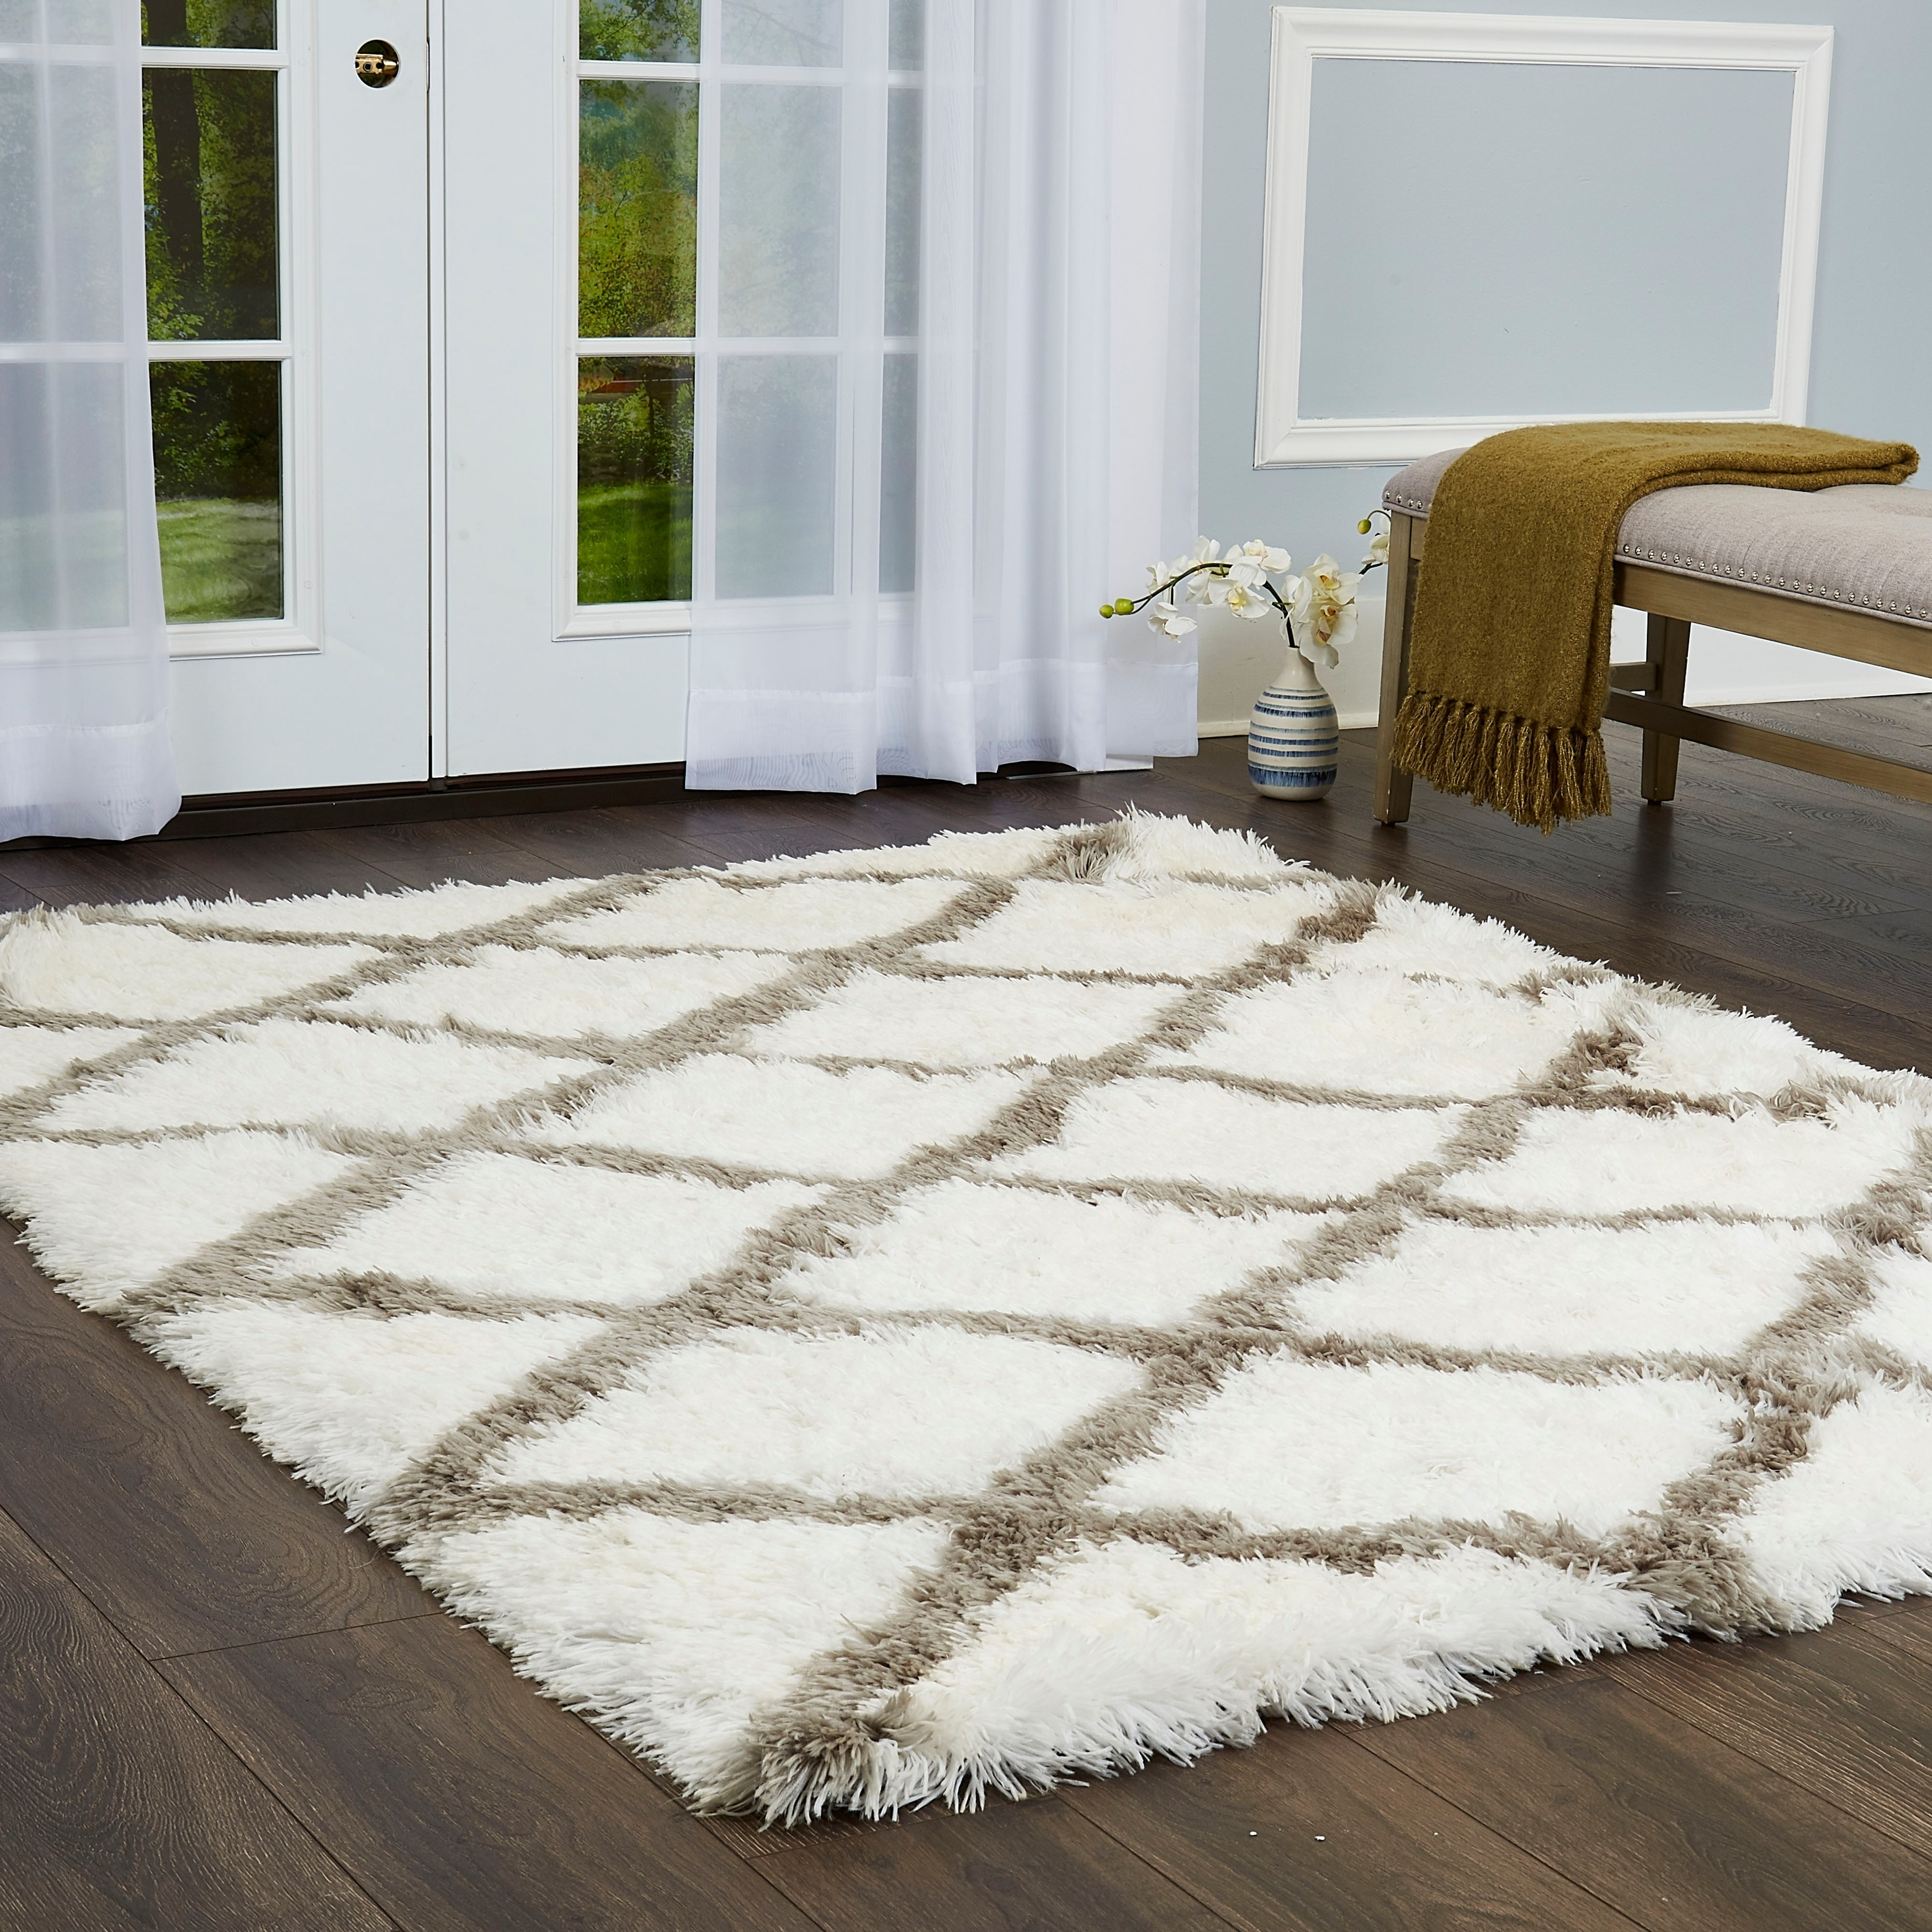 Picture of: Paramount Diamond White Gray Shag Area Rug By Elle Home 7 8 X10 2 Overstock 23465197